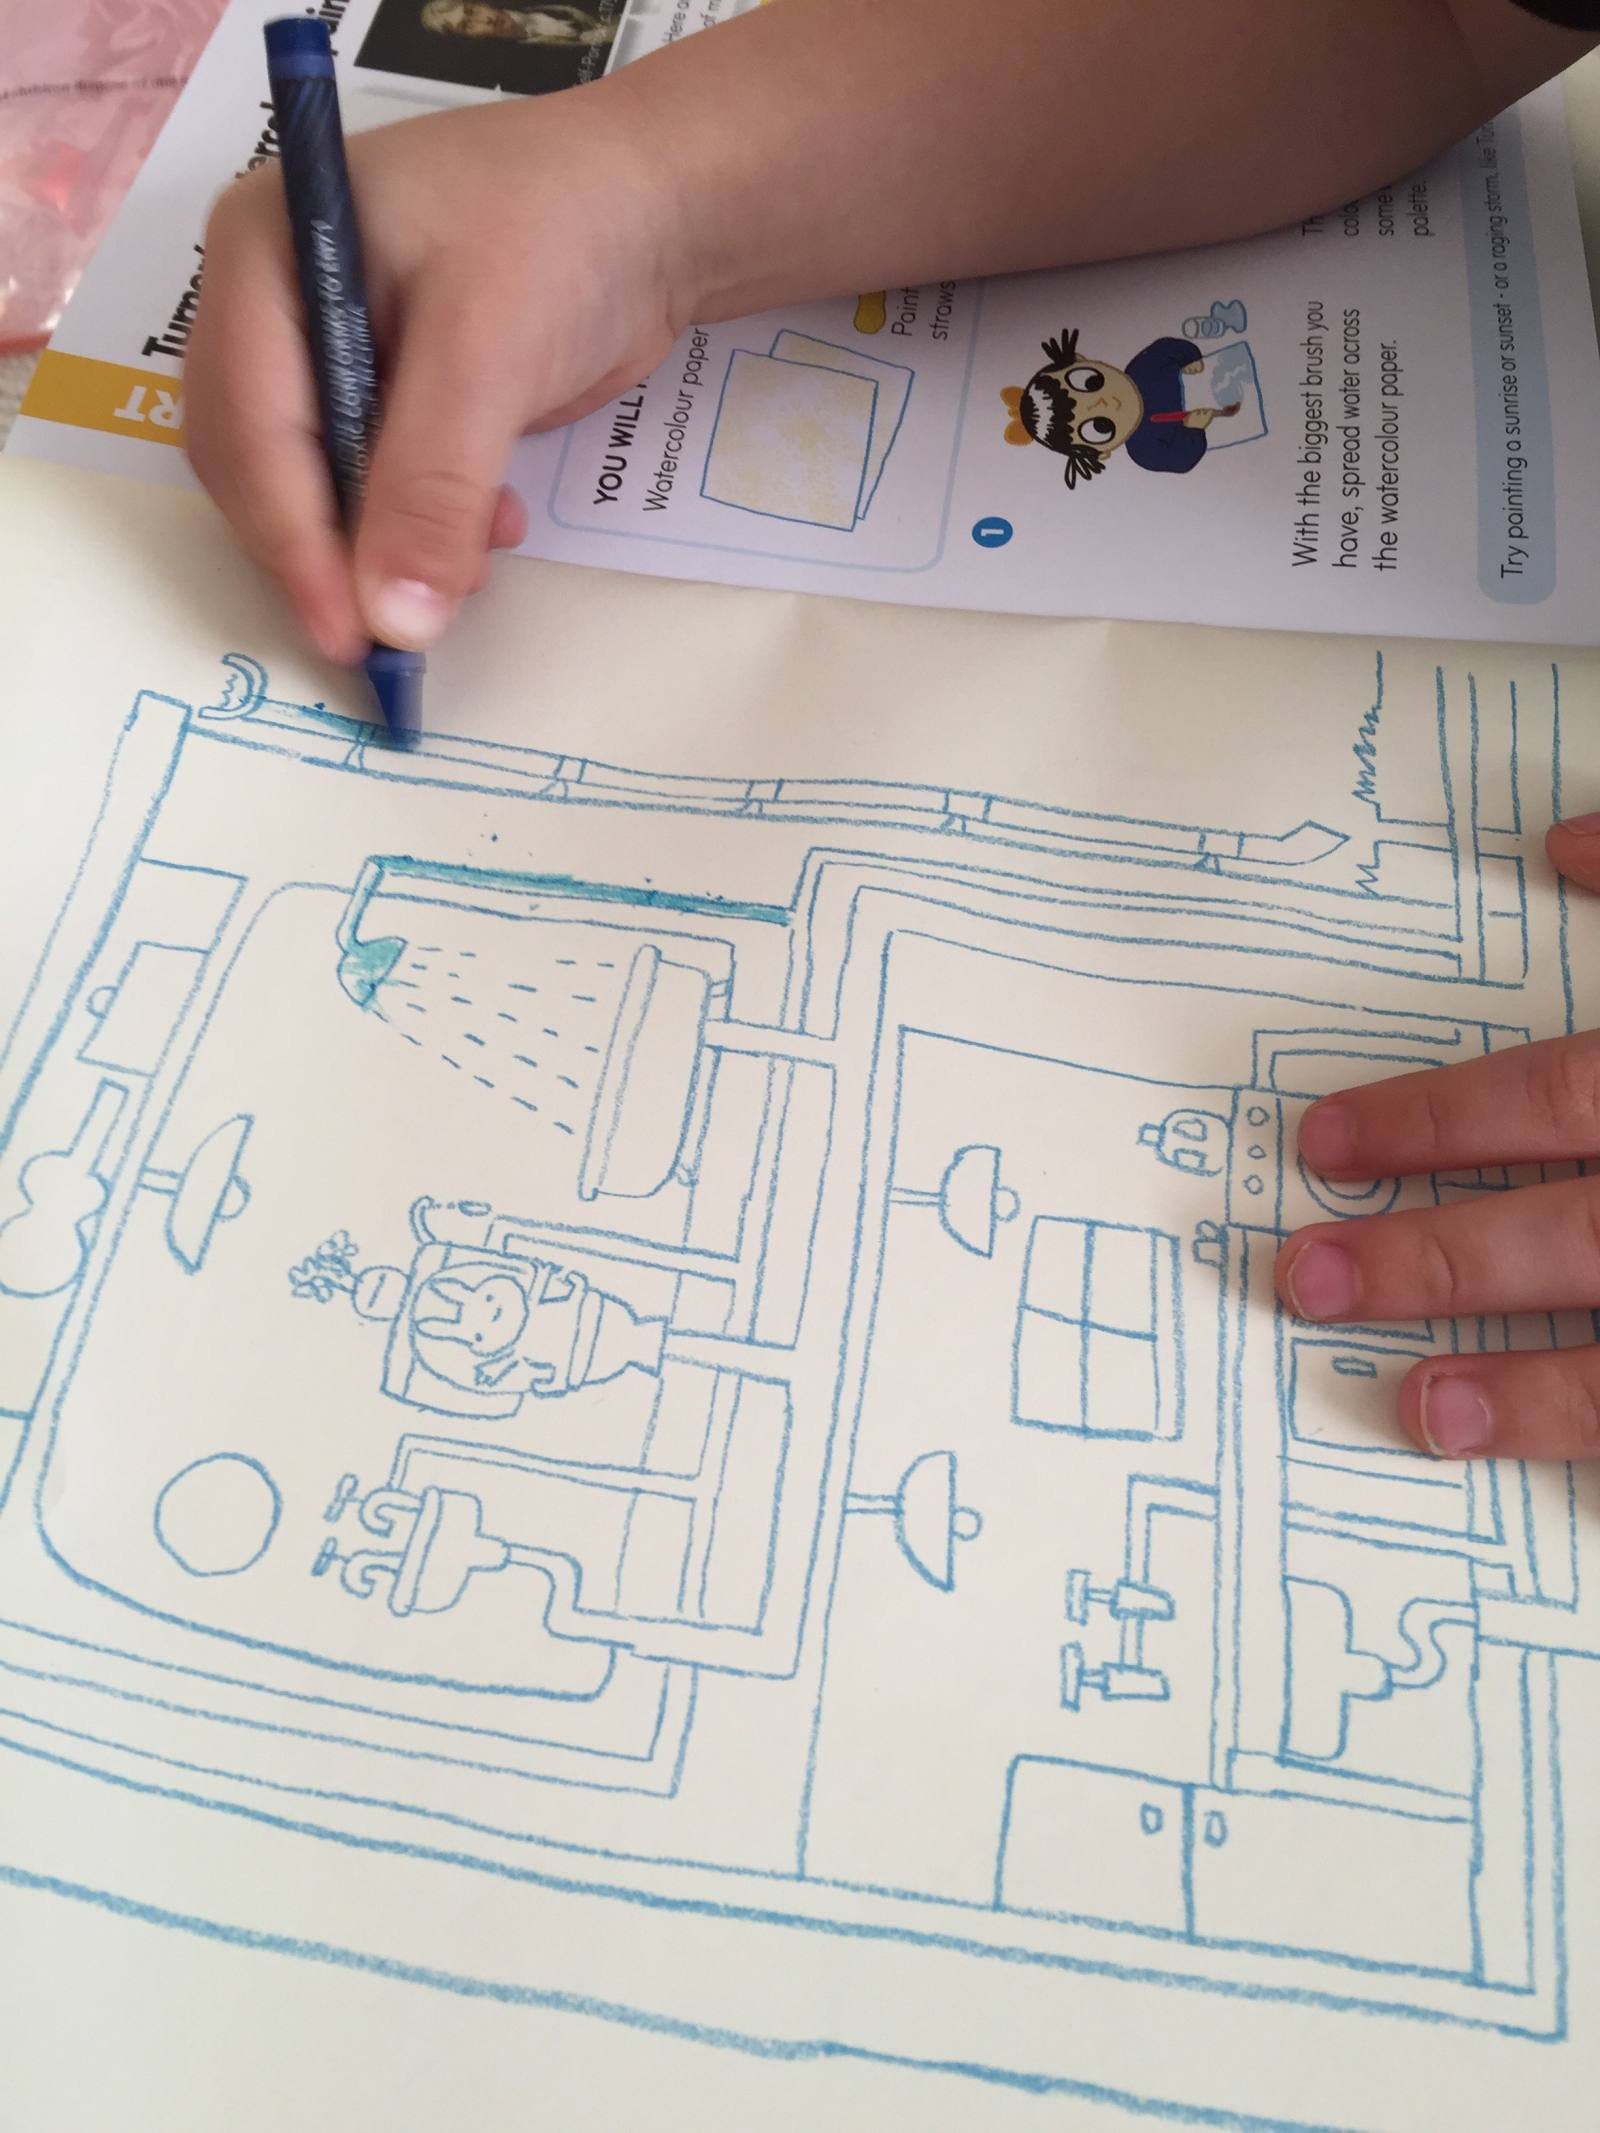 okido children's magazine issue with water includes a task to colour in the water pipes in the drawing of a house